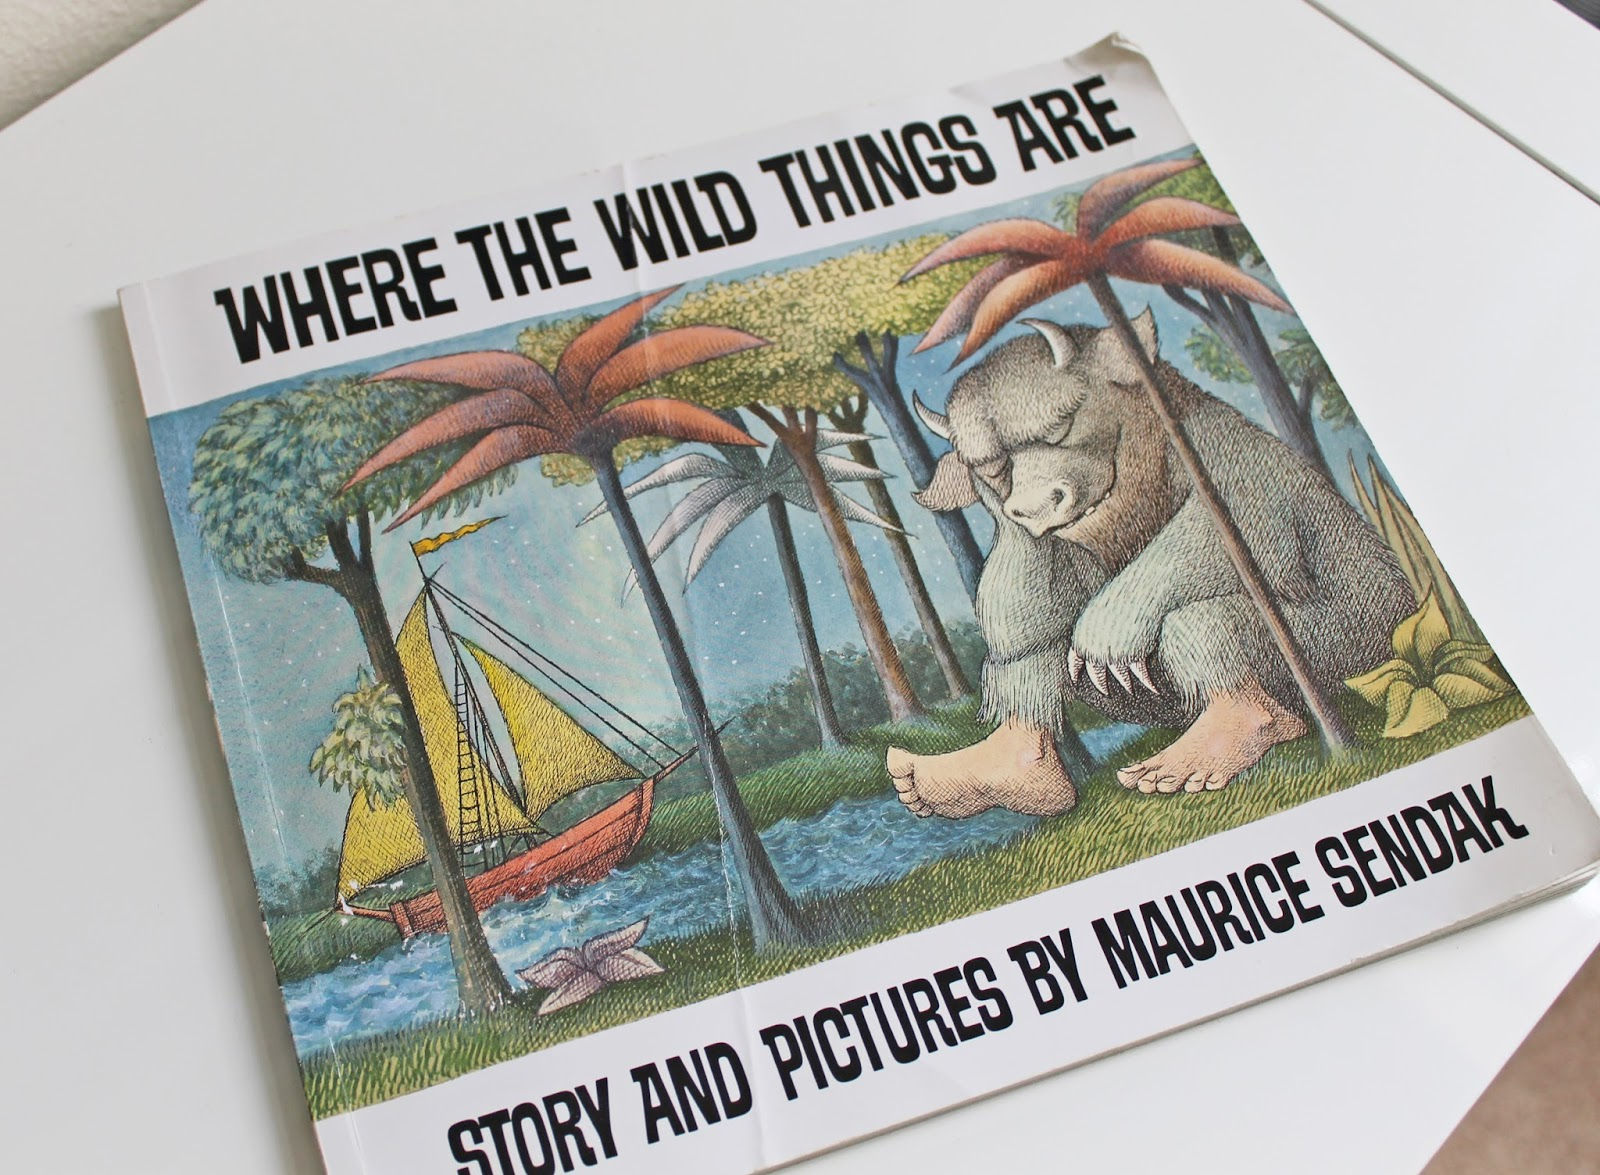 Where The Wild Things Are Book Cover Back When i think back to myWhere The Wild Things Are Book Cover